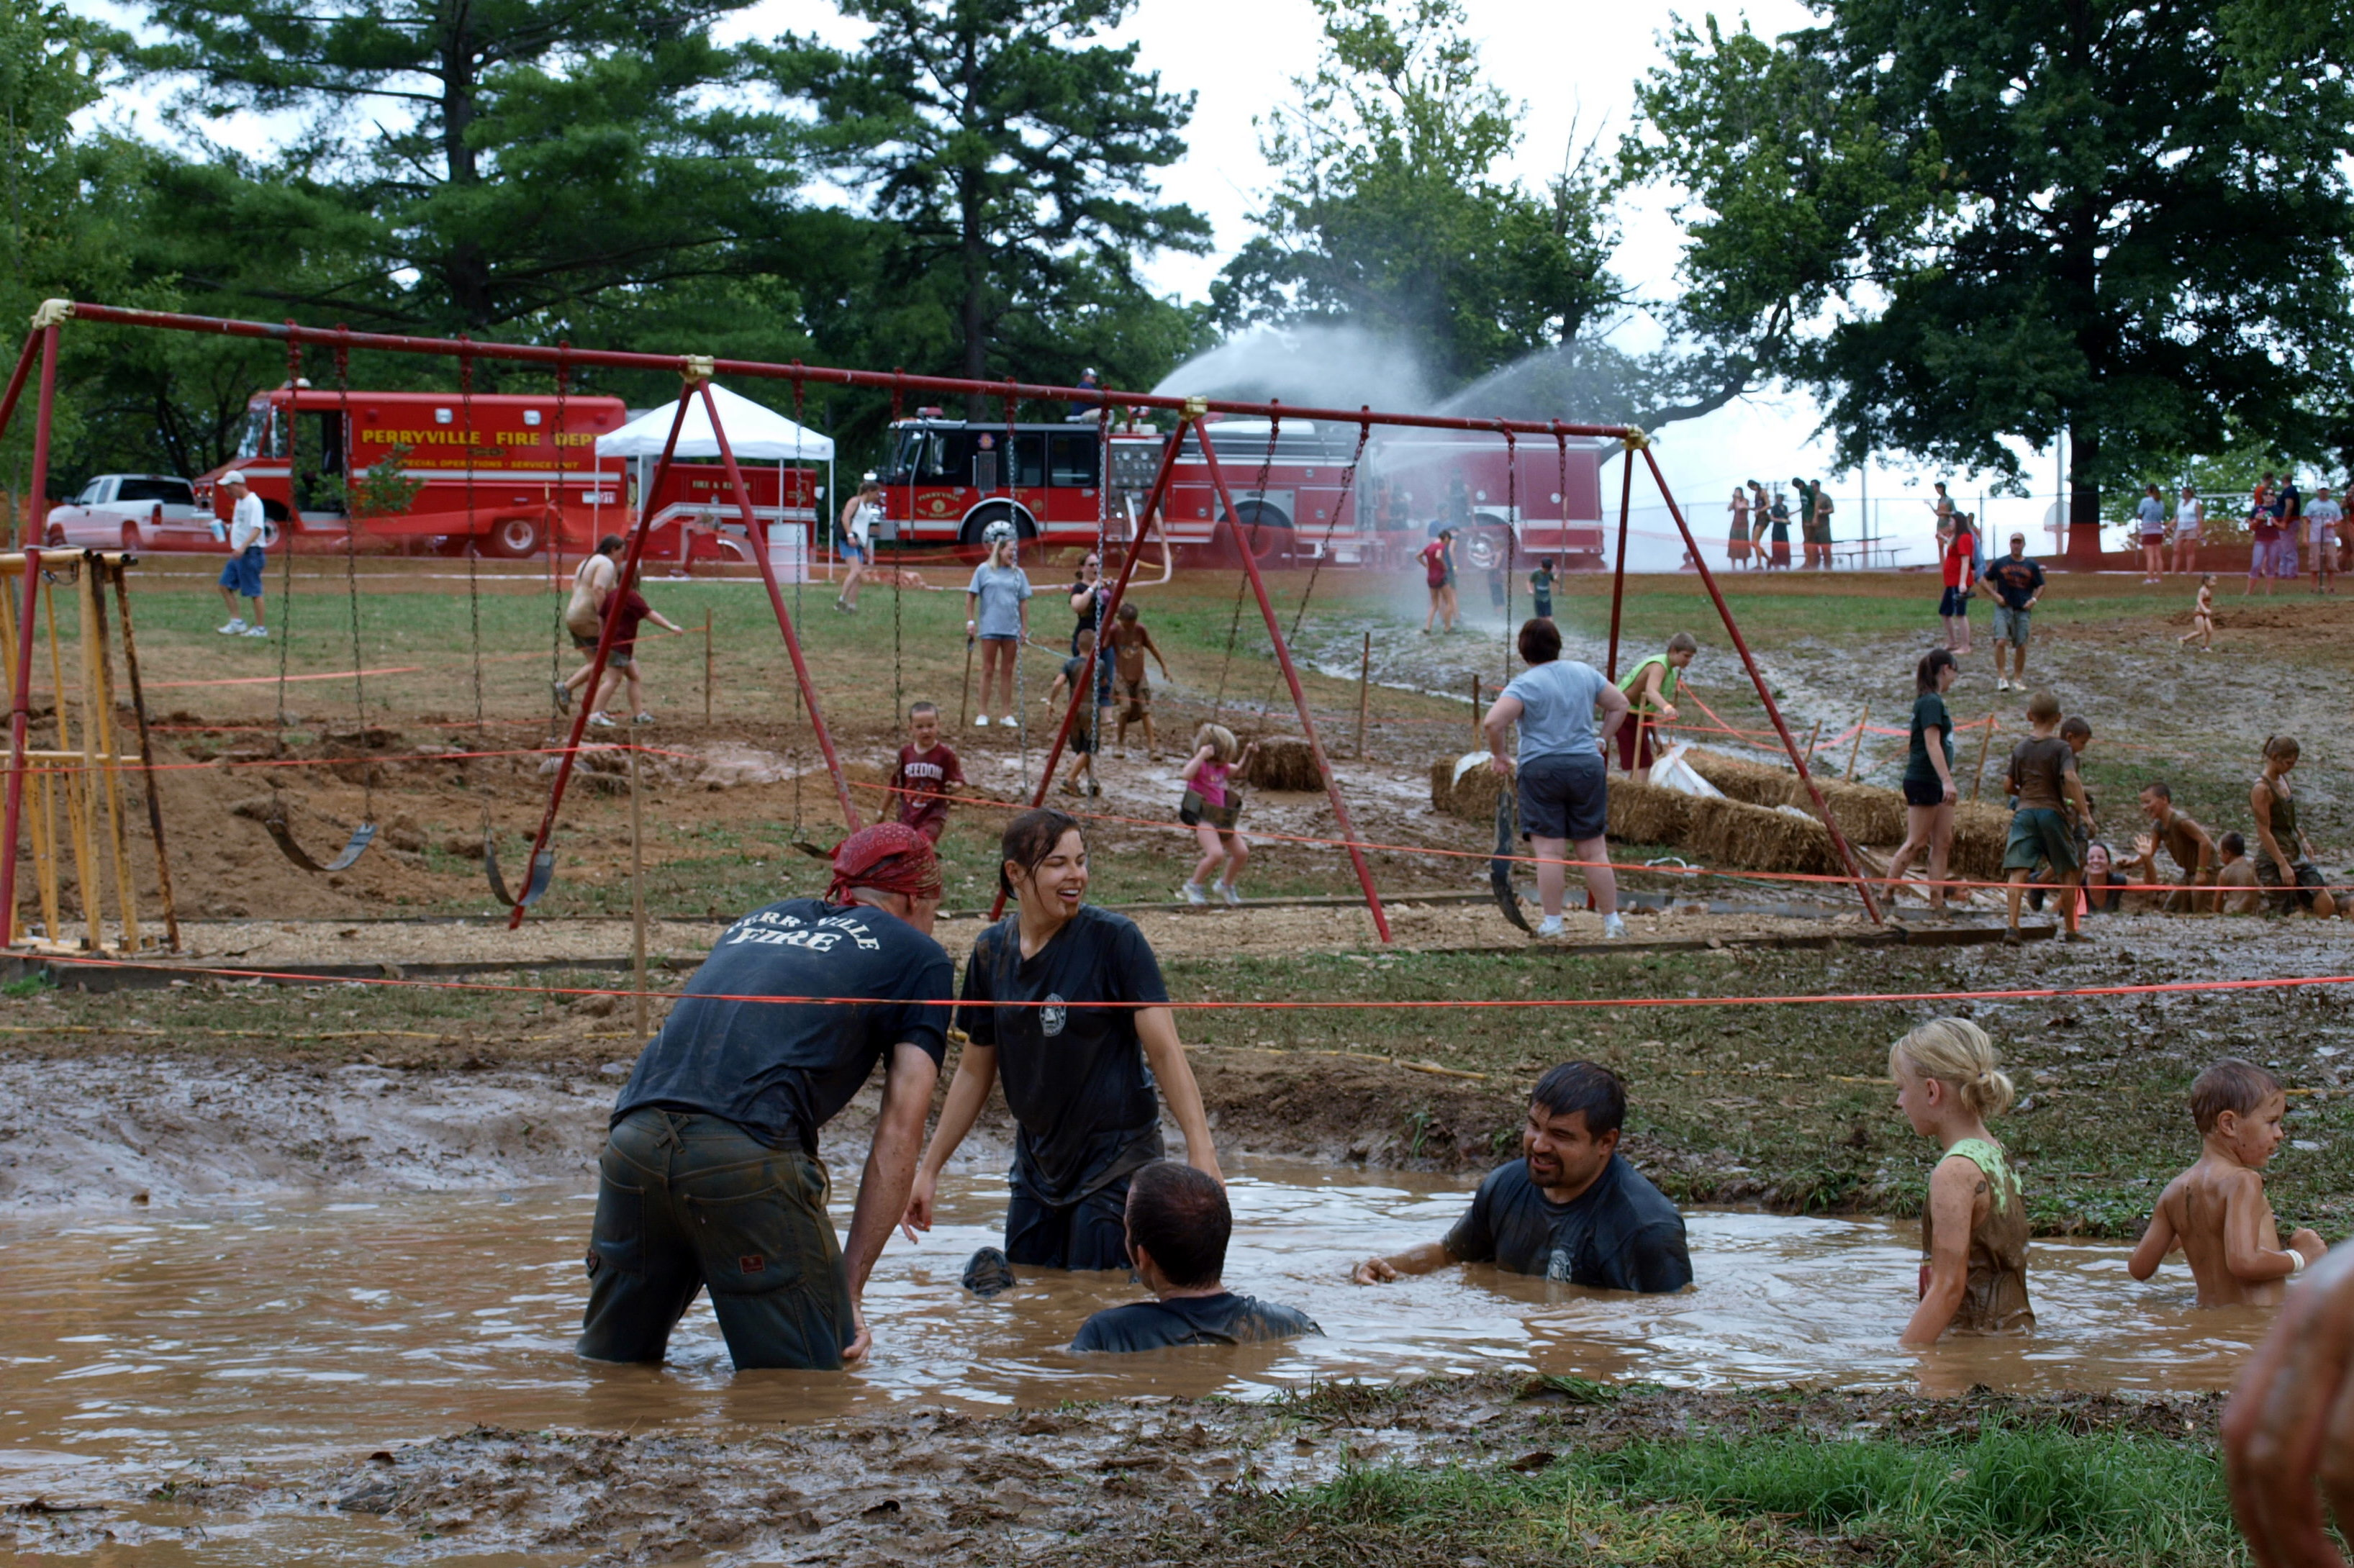 Adults playing in the mud